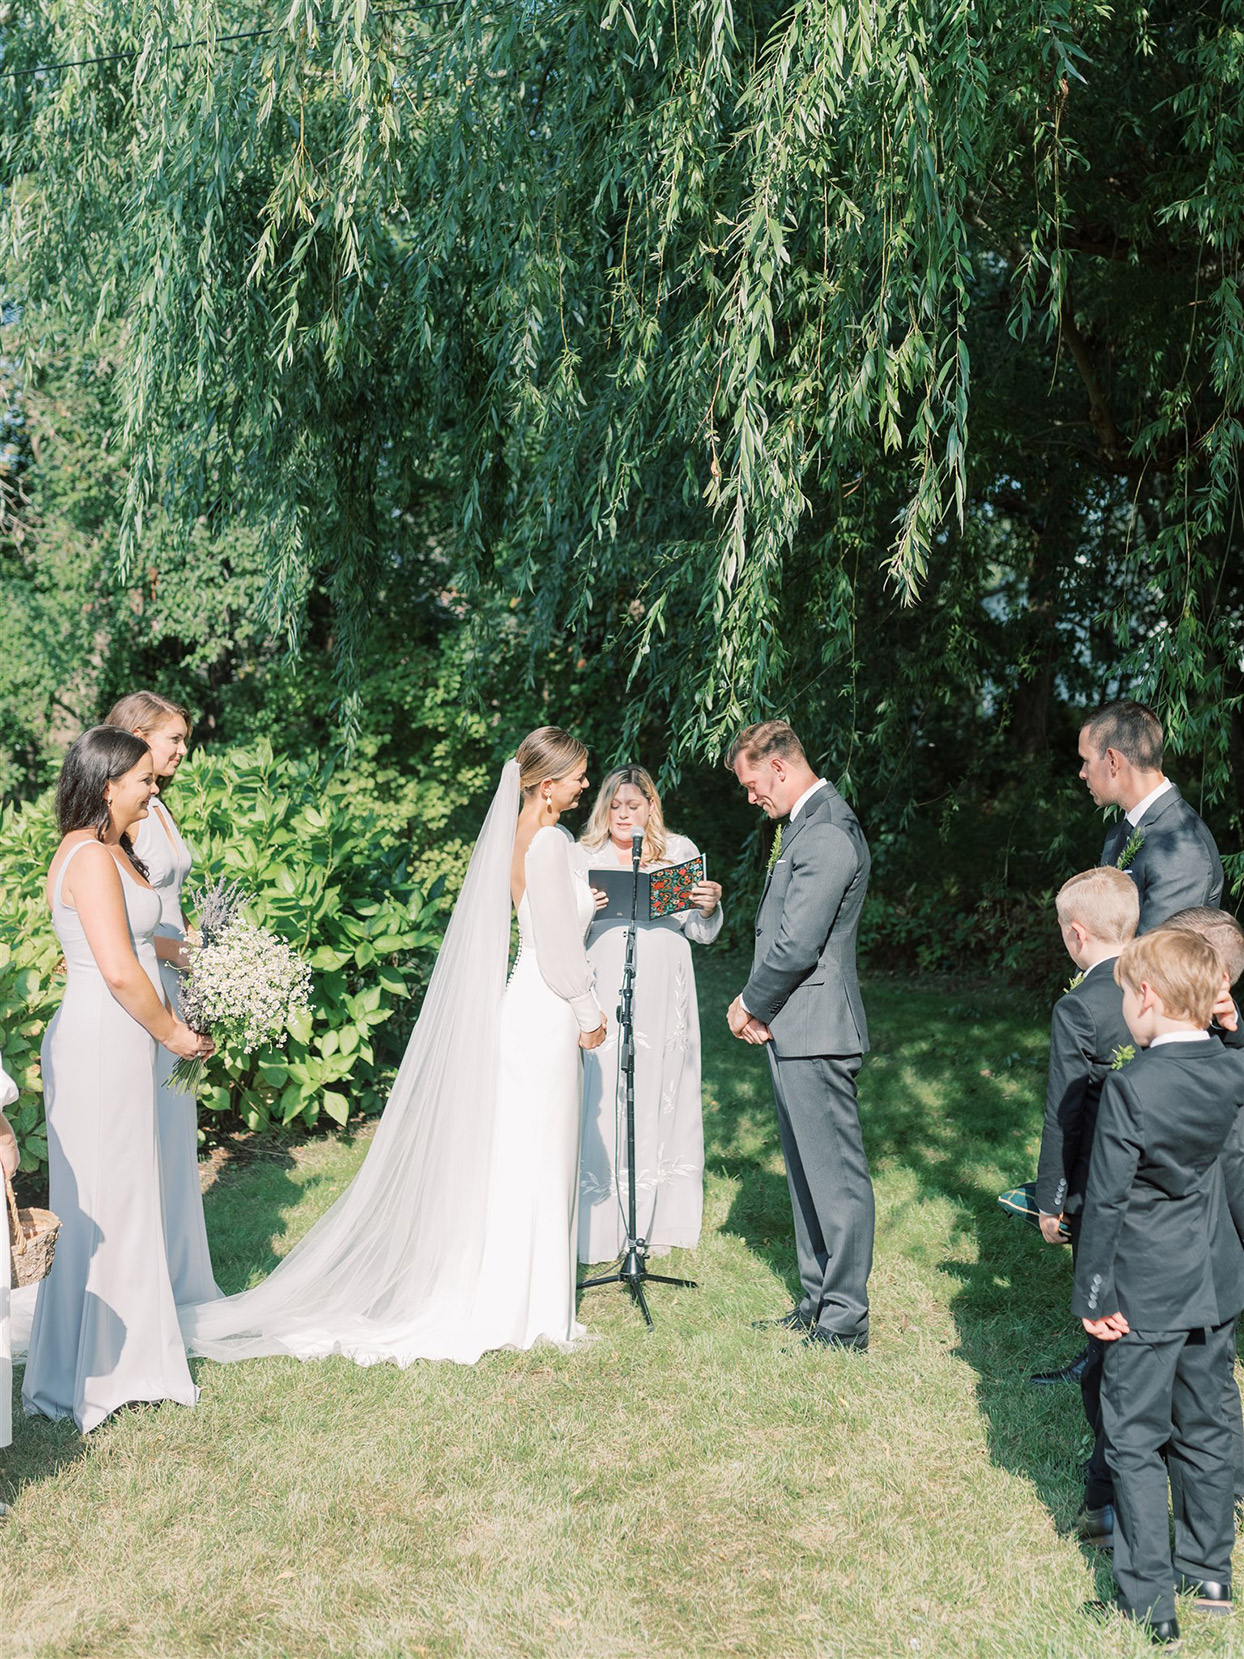 samantha cody wedding ceremony in grass with tree backdrop